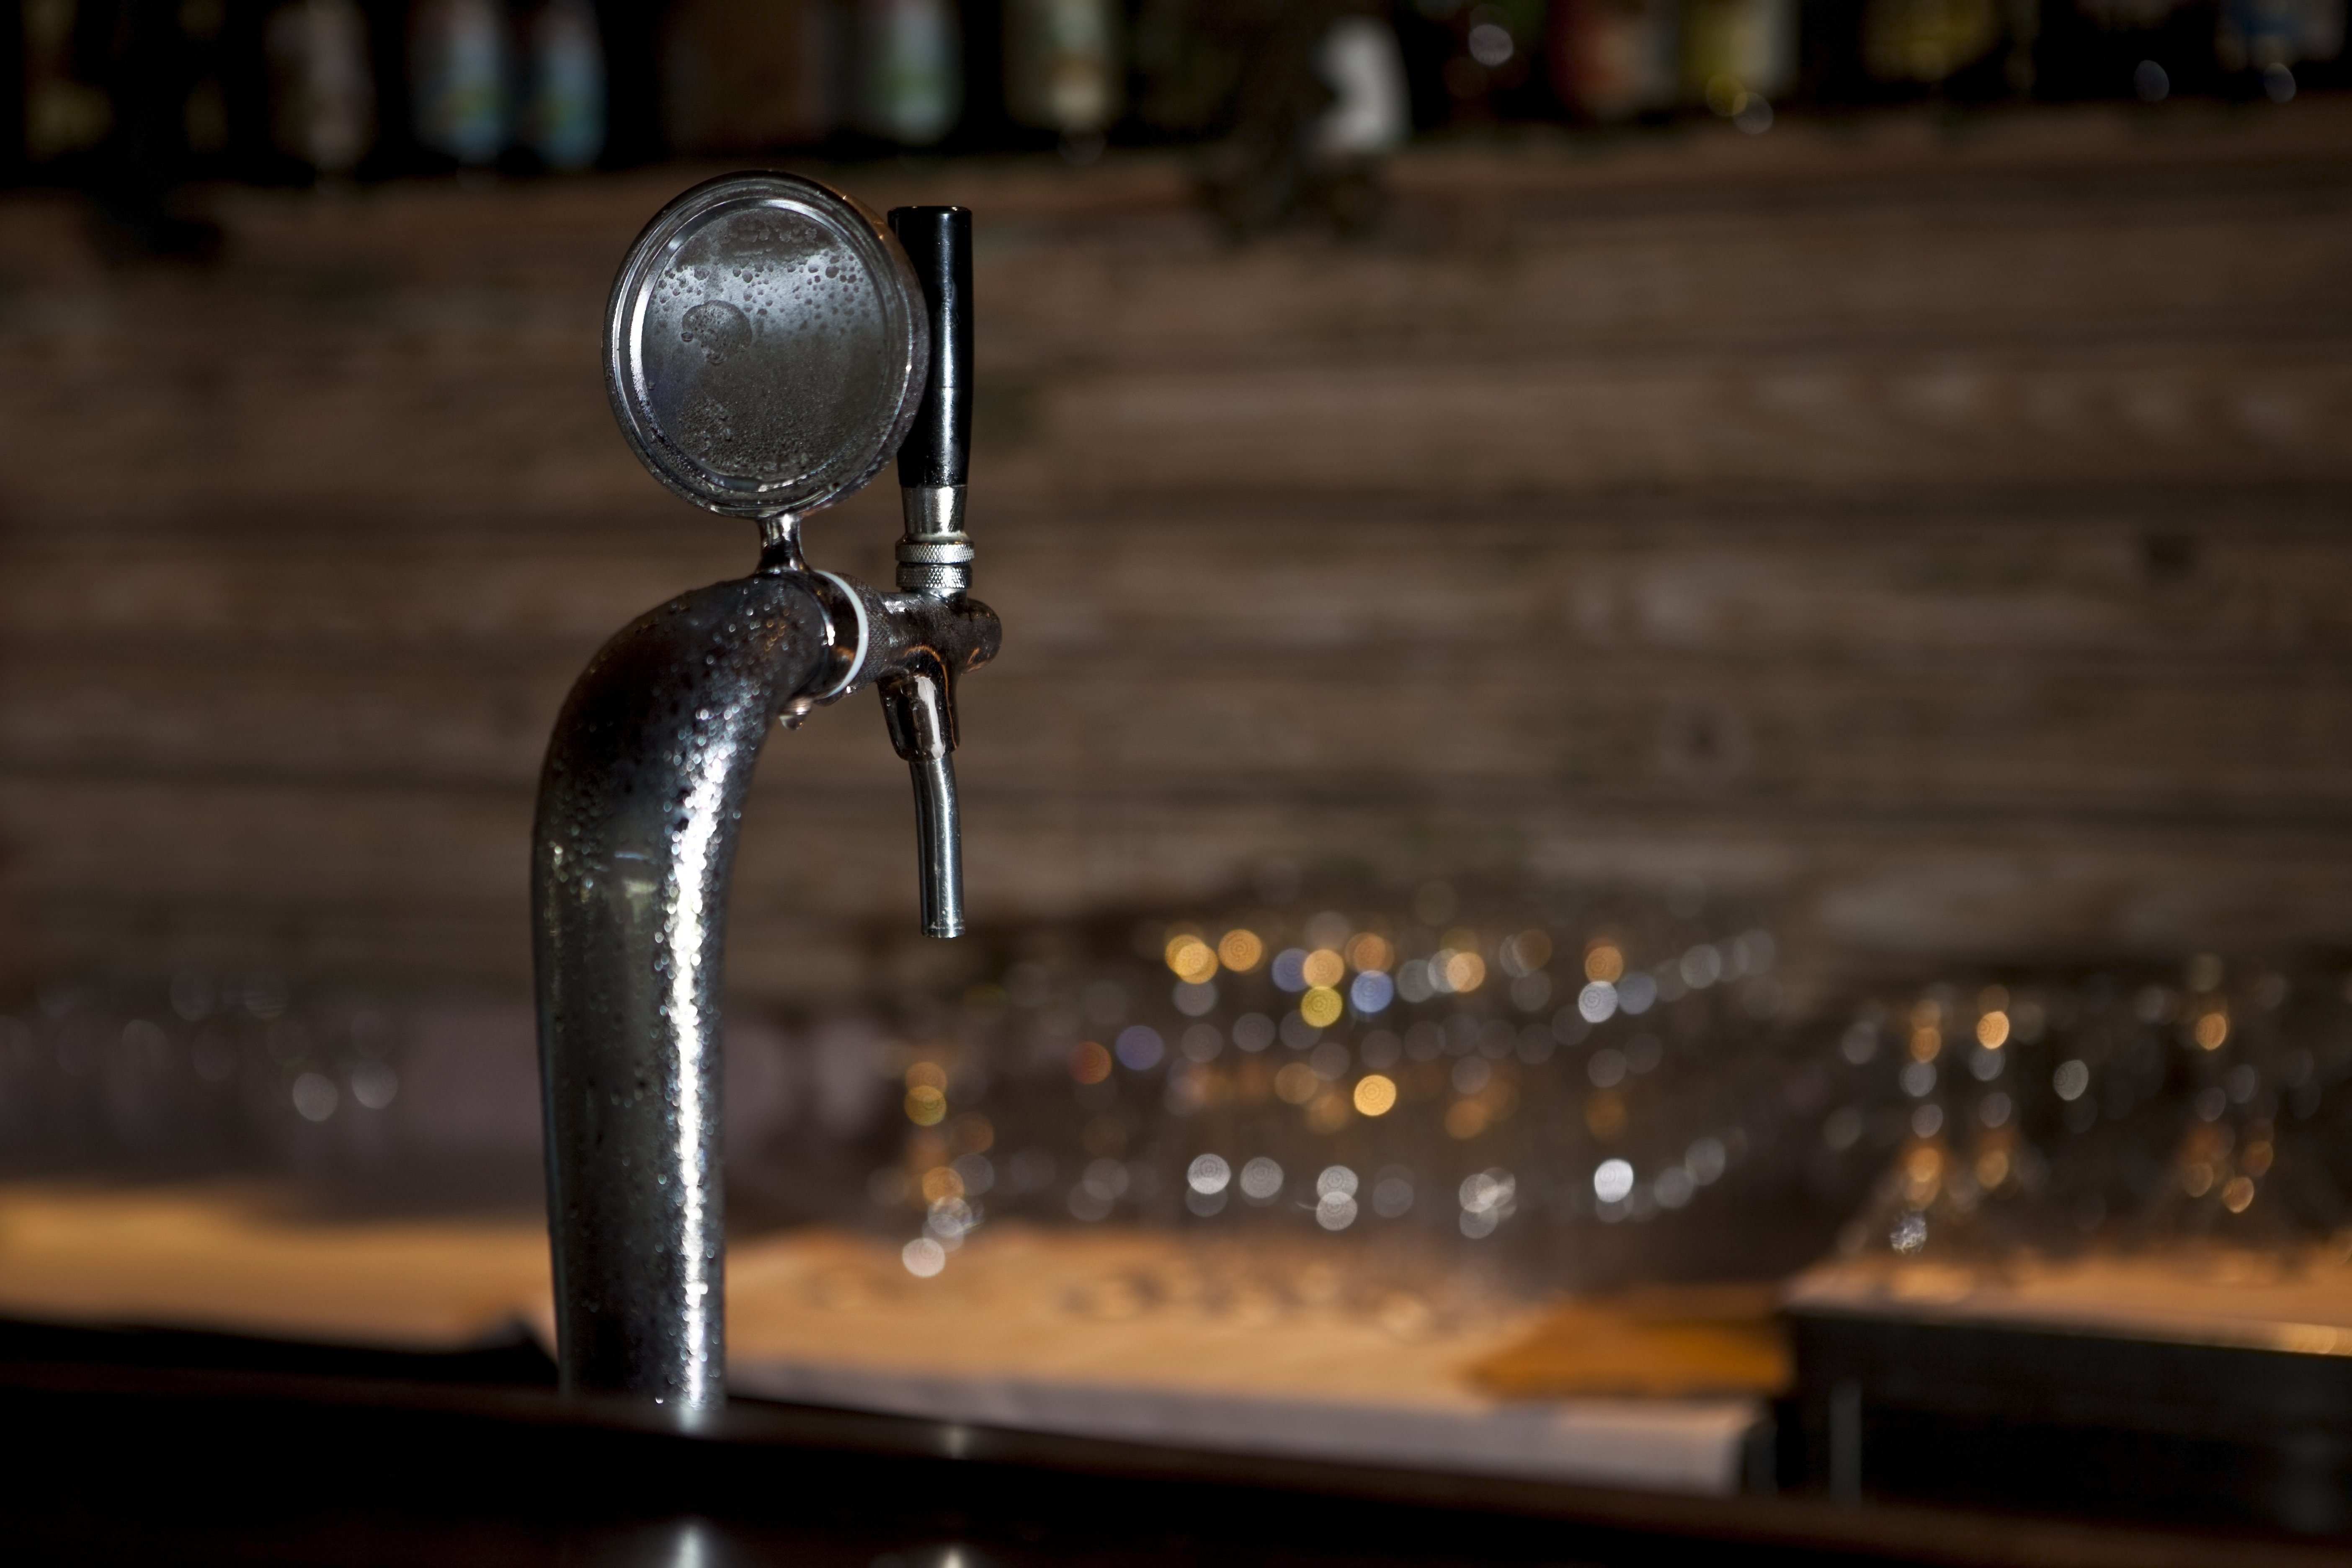 Draught Beer Tap in a Bar